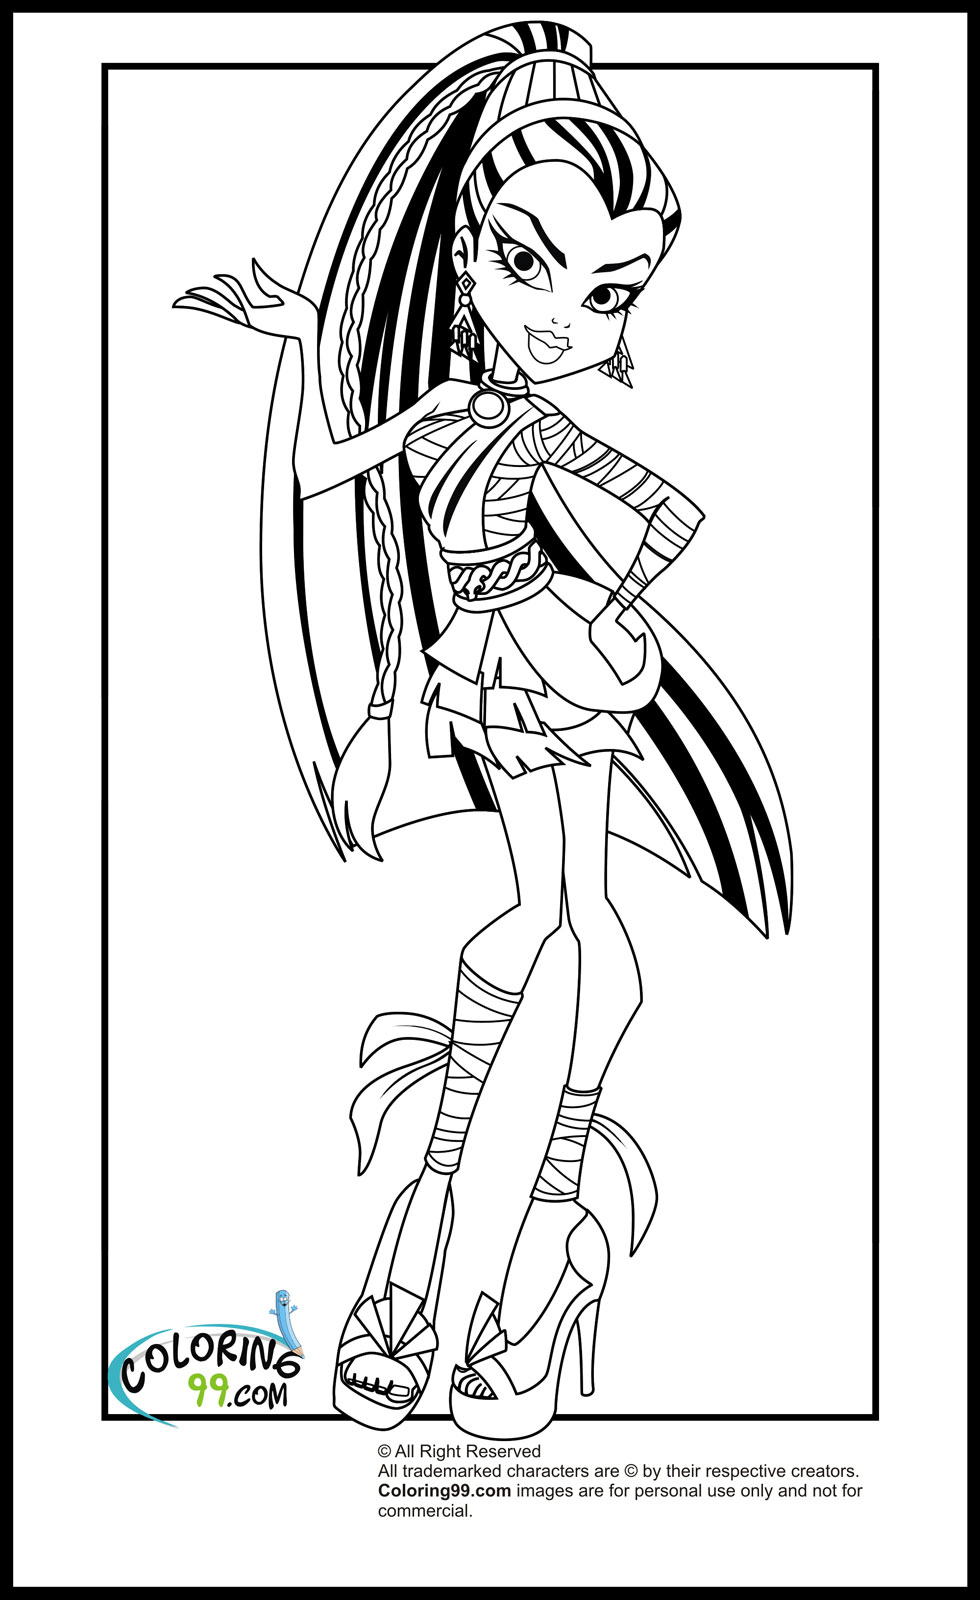 monster high coloring picture coloring pages monster high coloring pages free and printable picture coloring high monster